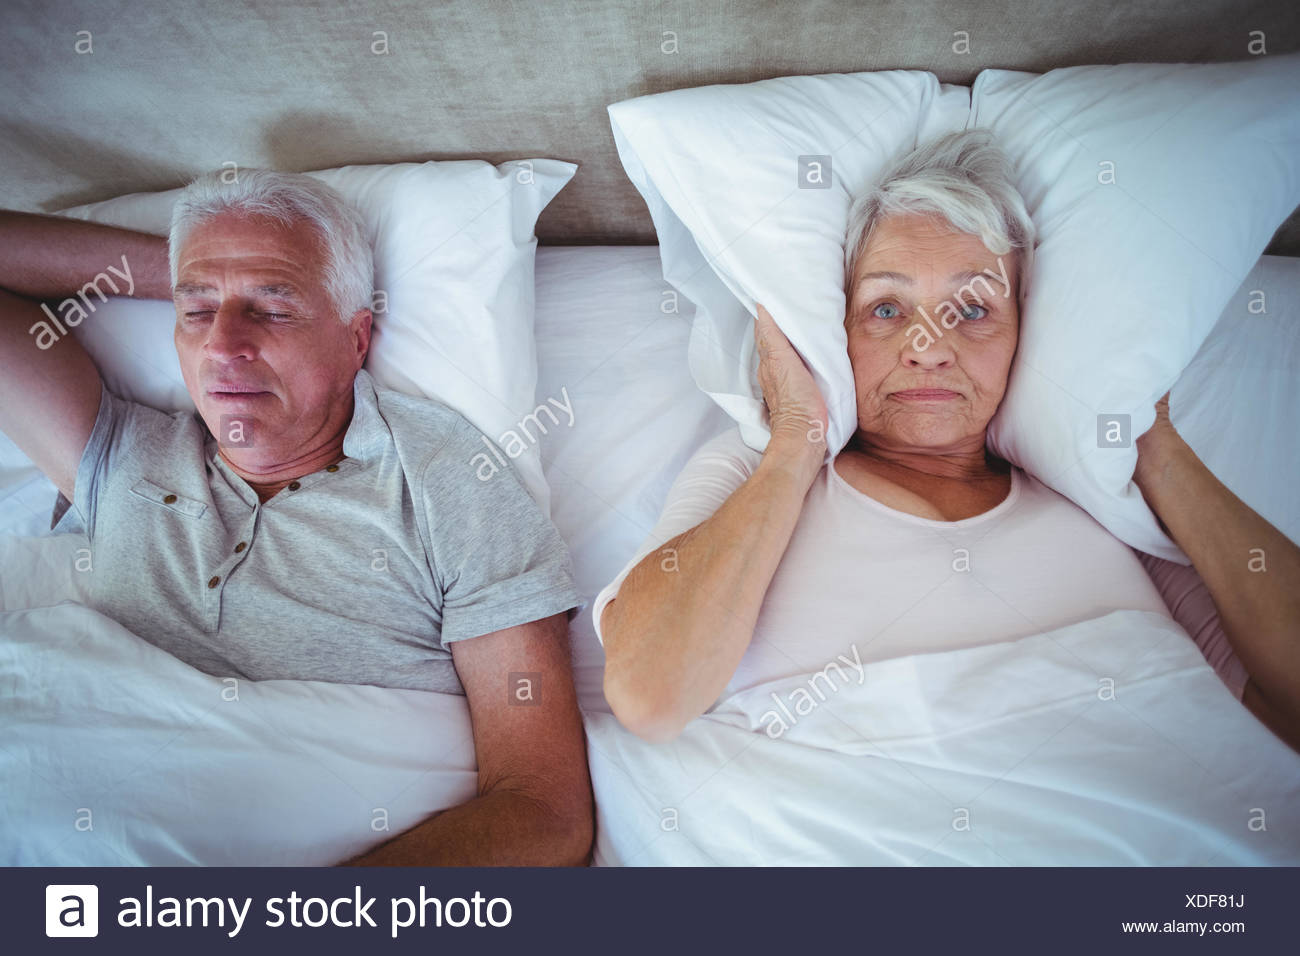 Wife blocking ears with pillow while husband snoring on bed Stock Photo